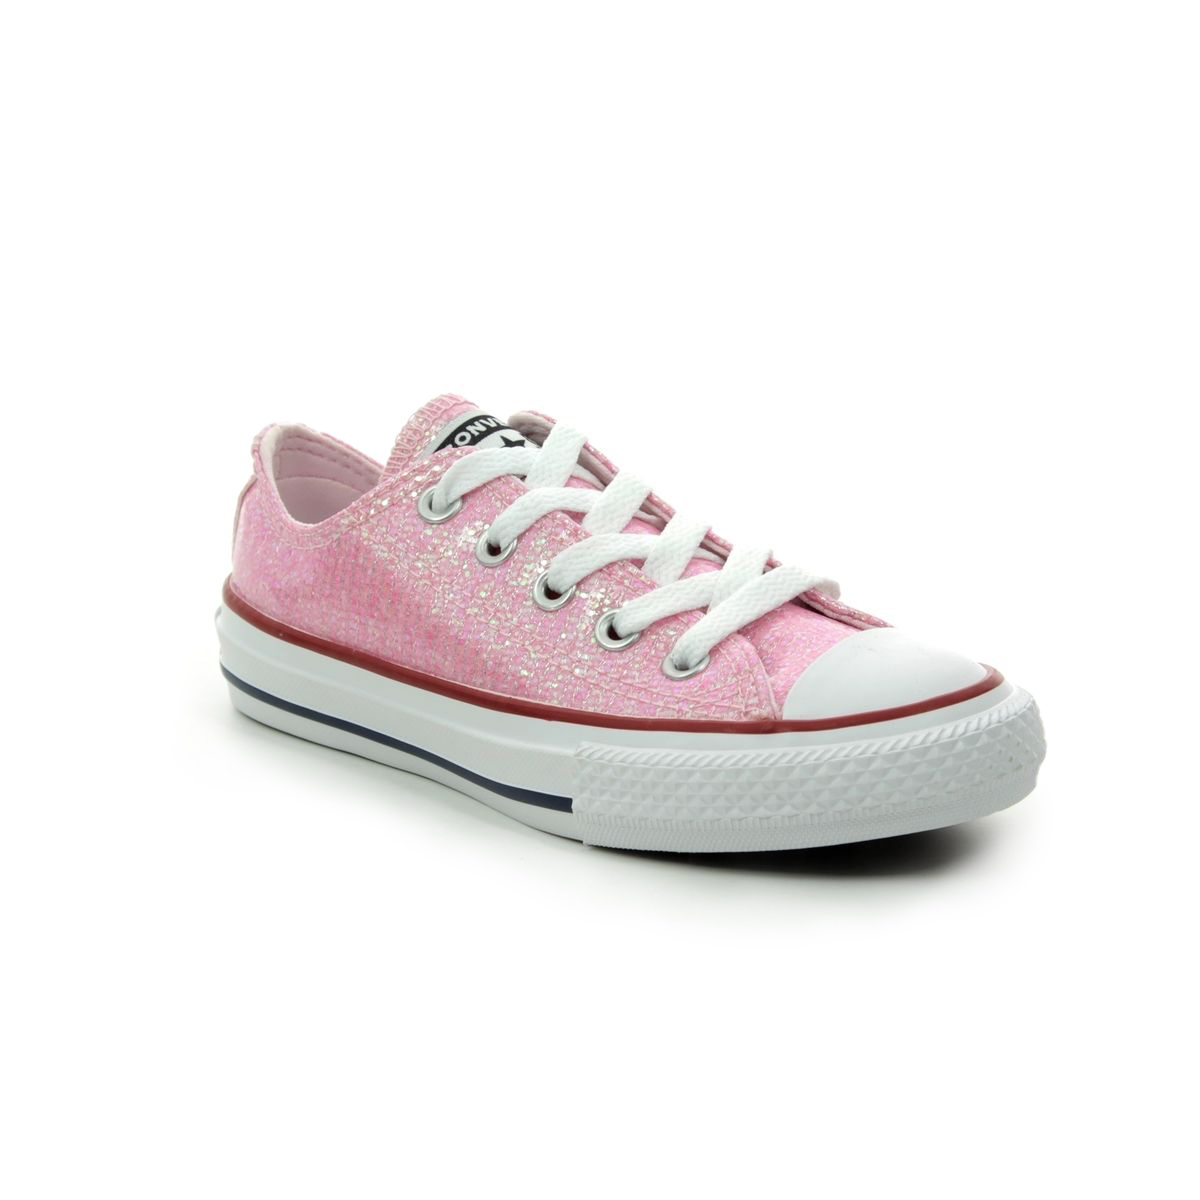 3ad6975c05d4 Converse Trainers - Pink - 663628C ALLSTAR OX JUNIOR